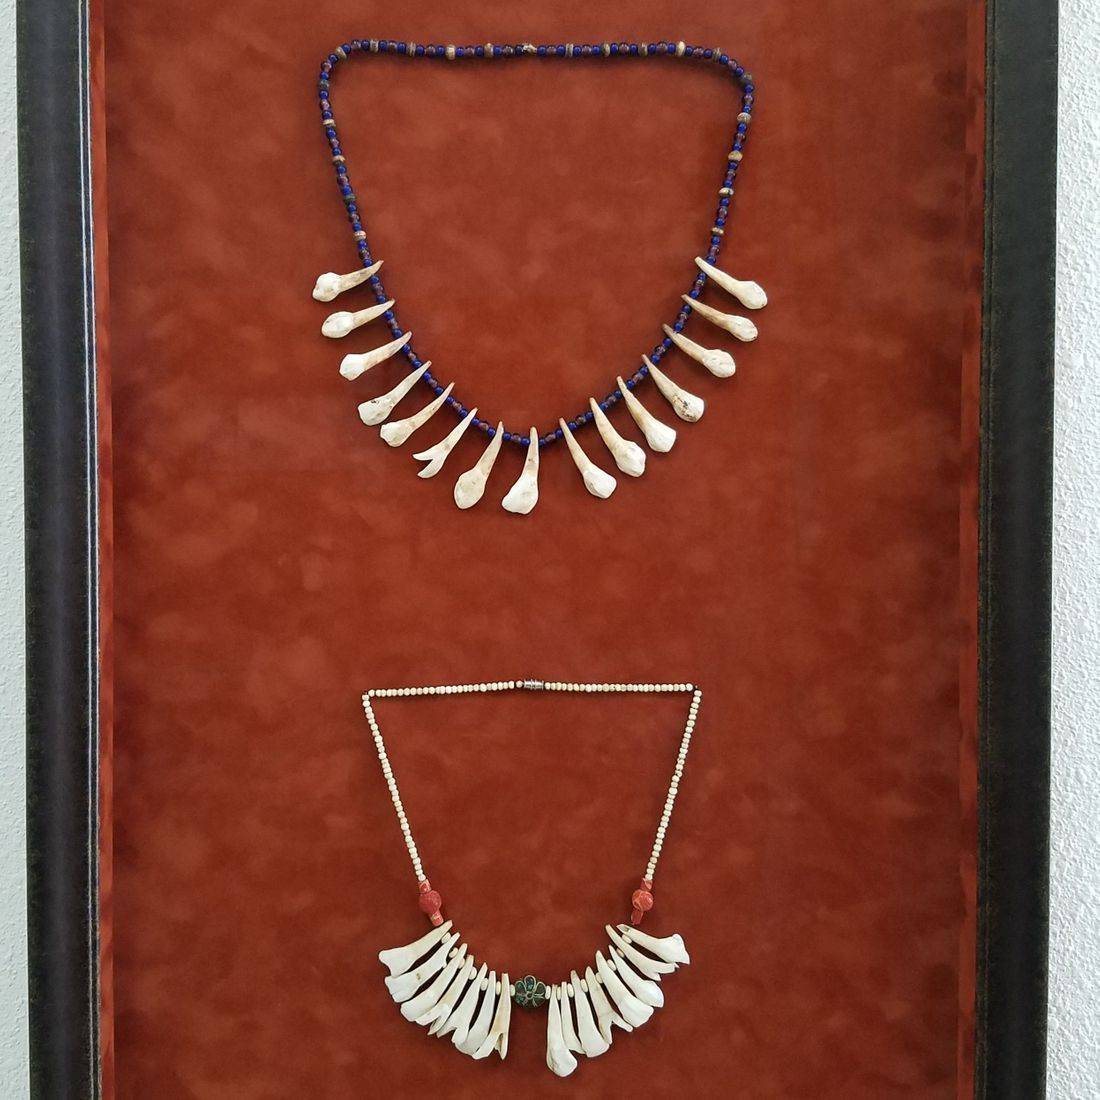 Sunset Framer mounted necklaces shadow box